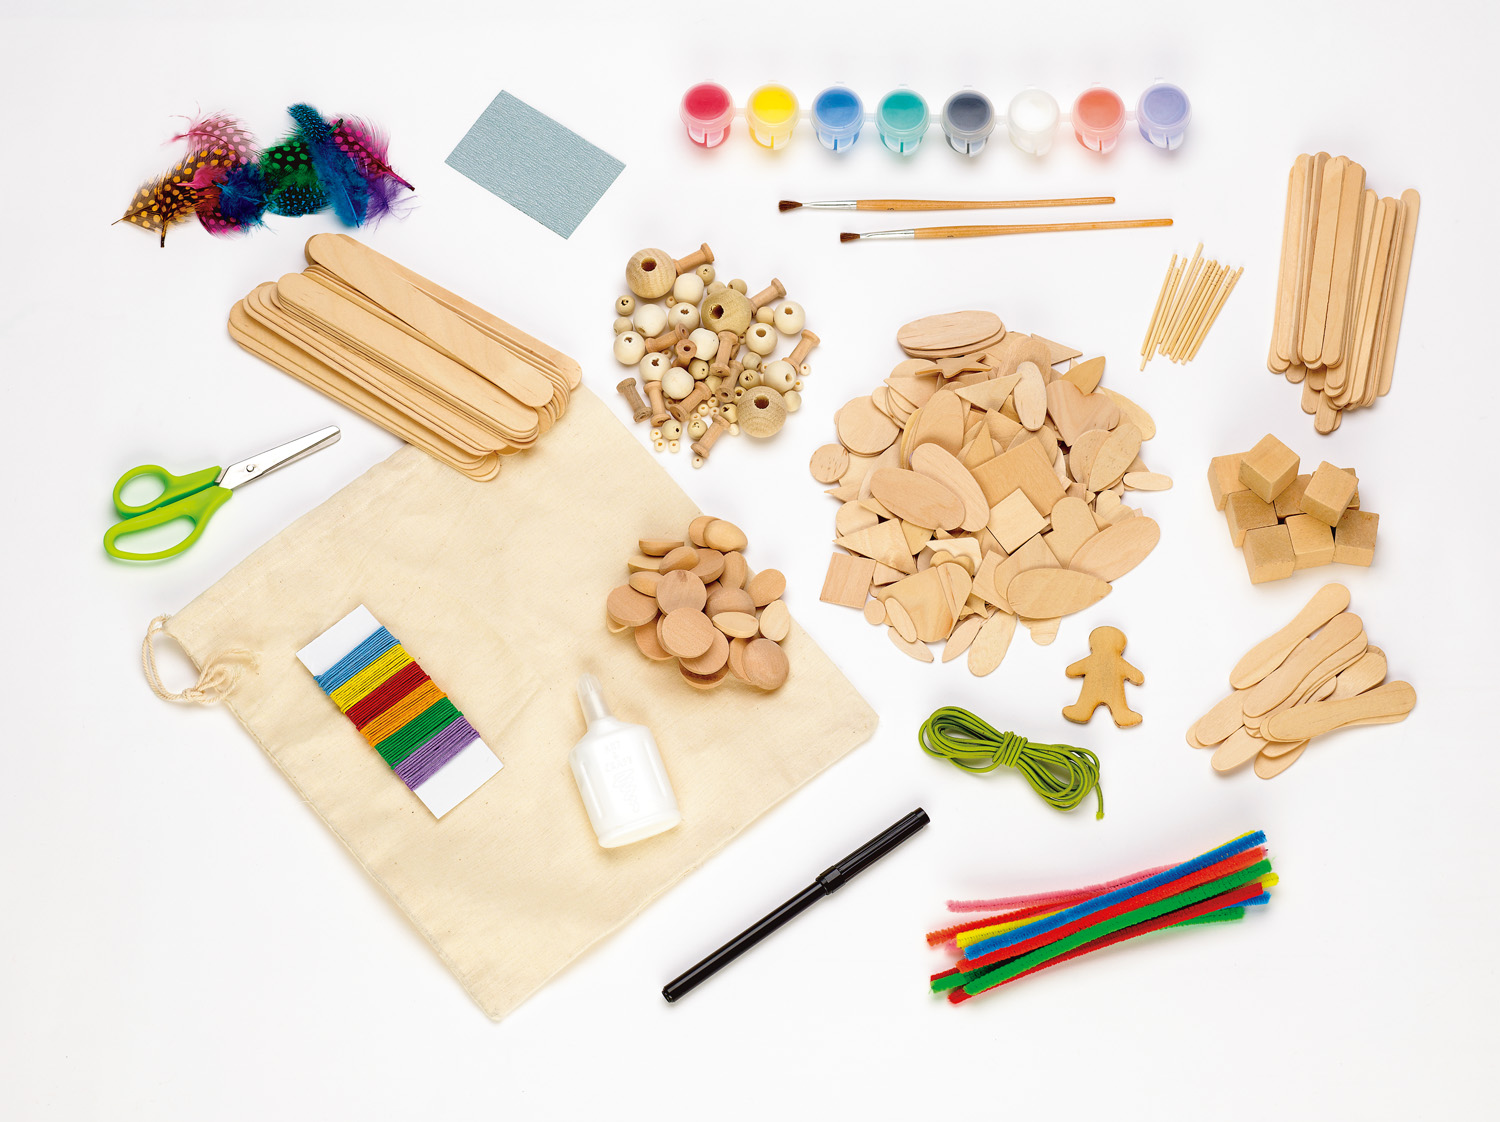 Craft kits for preschoolers - Wooden Craft Kits For Kids Classic Wood Crafts By Creativity For Kids Go Grow